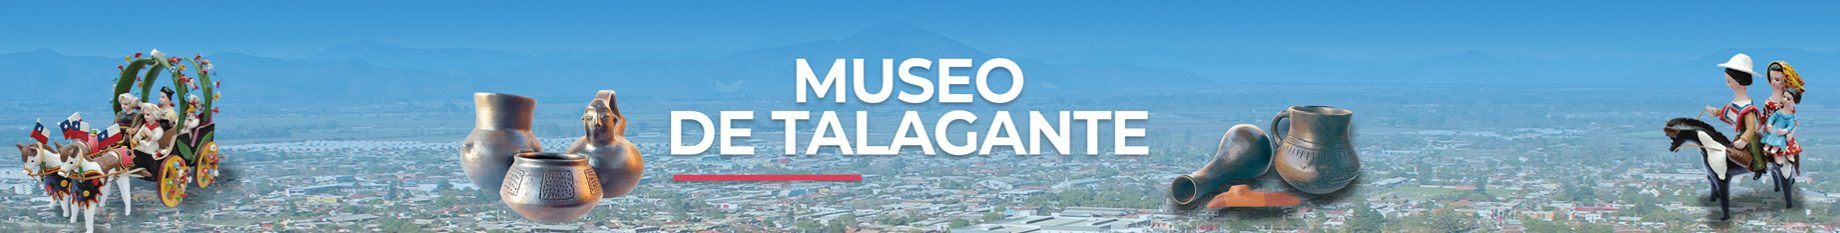 MUSEO_-CENTRO_BANNER_1